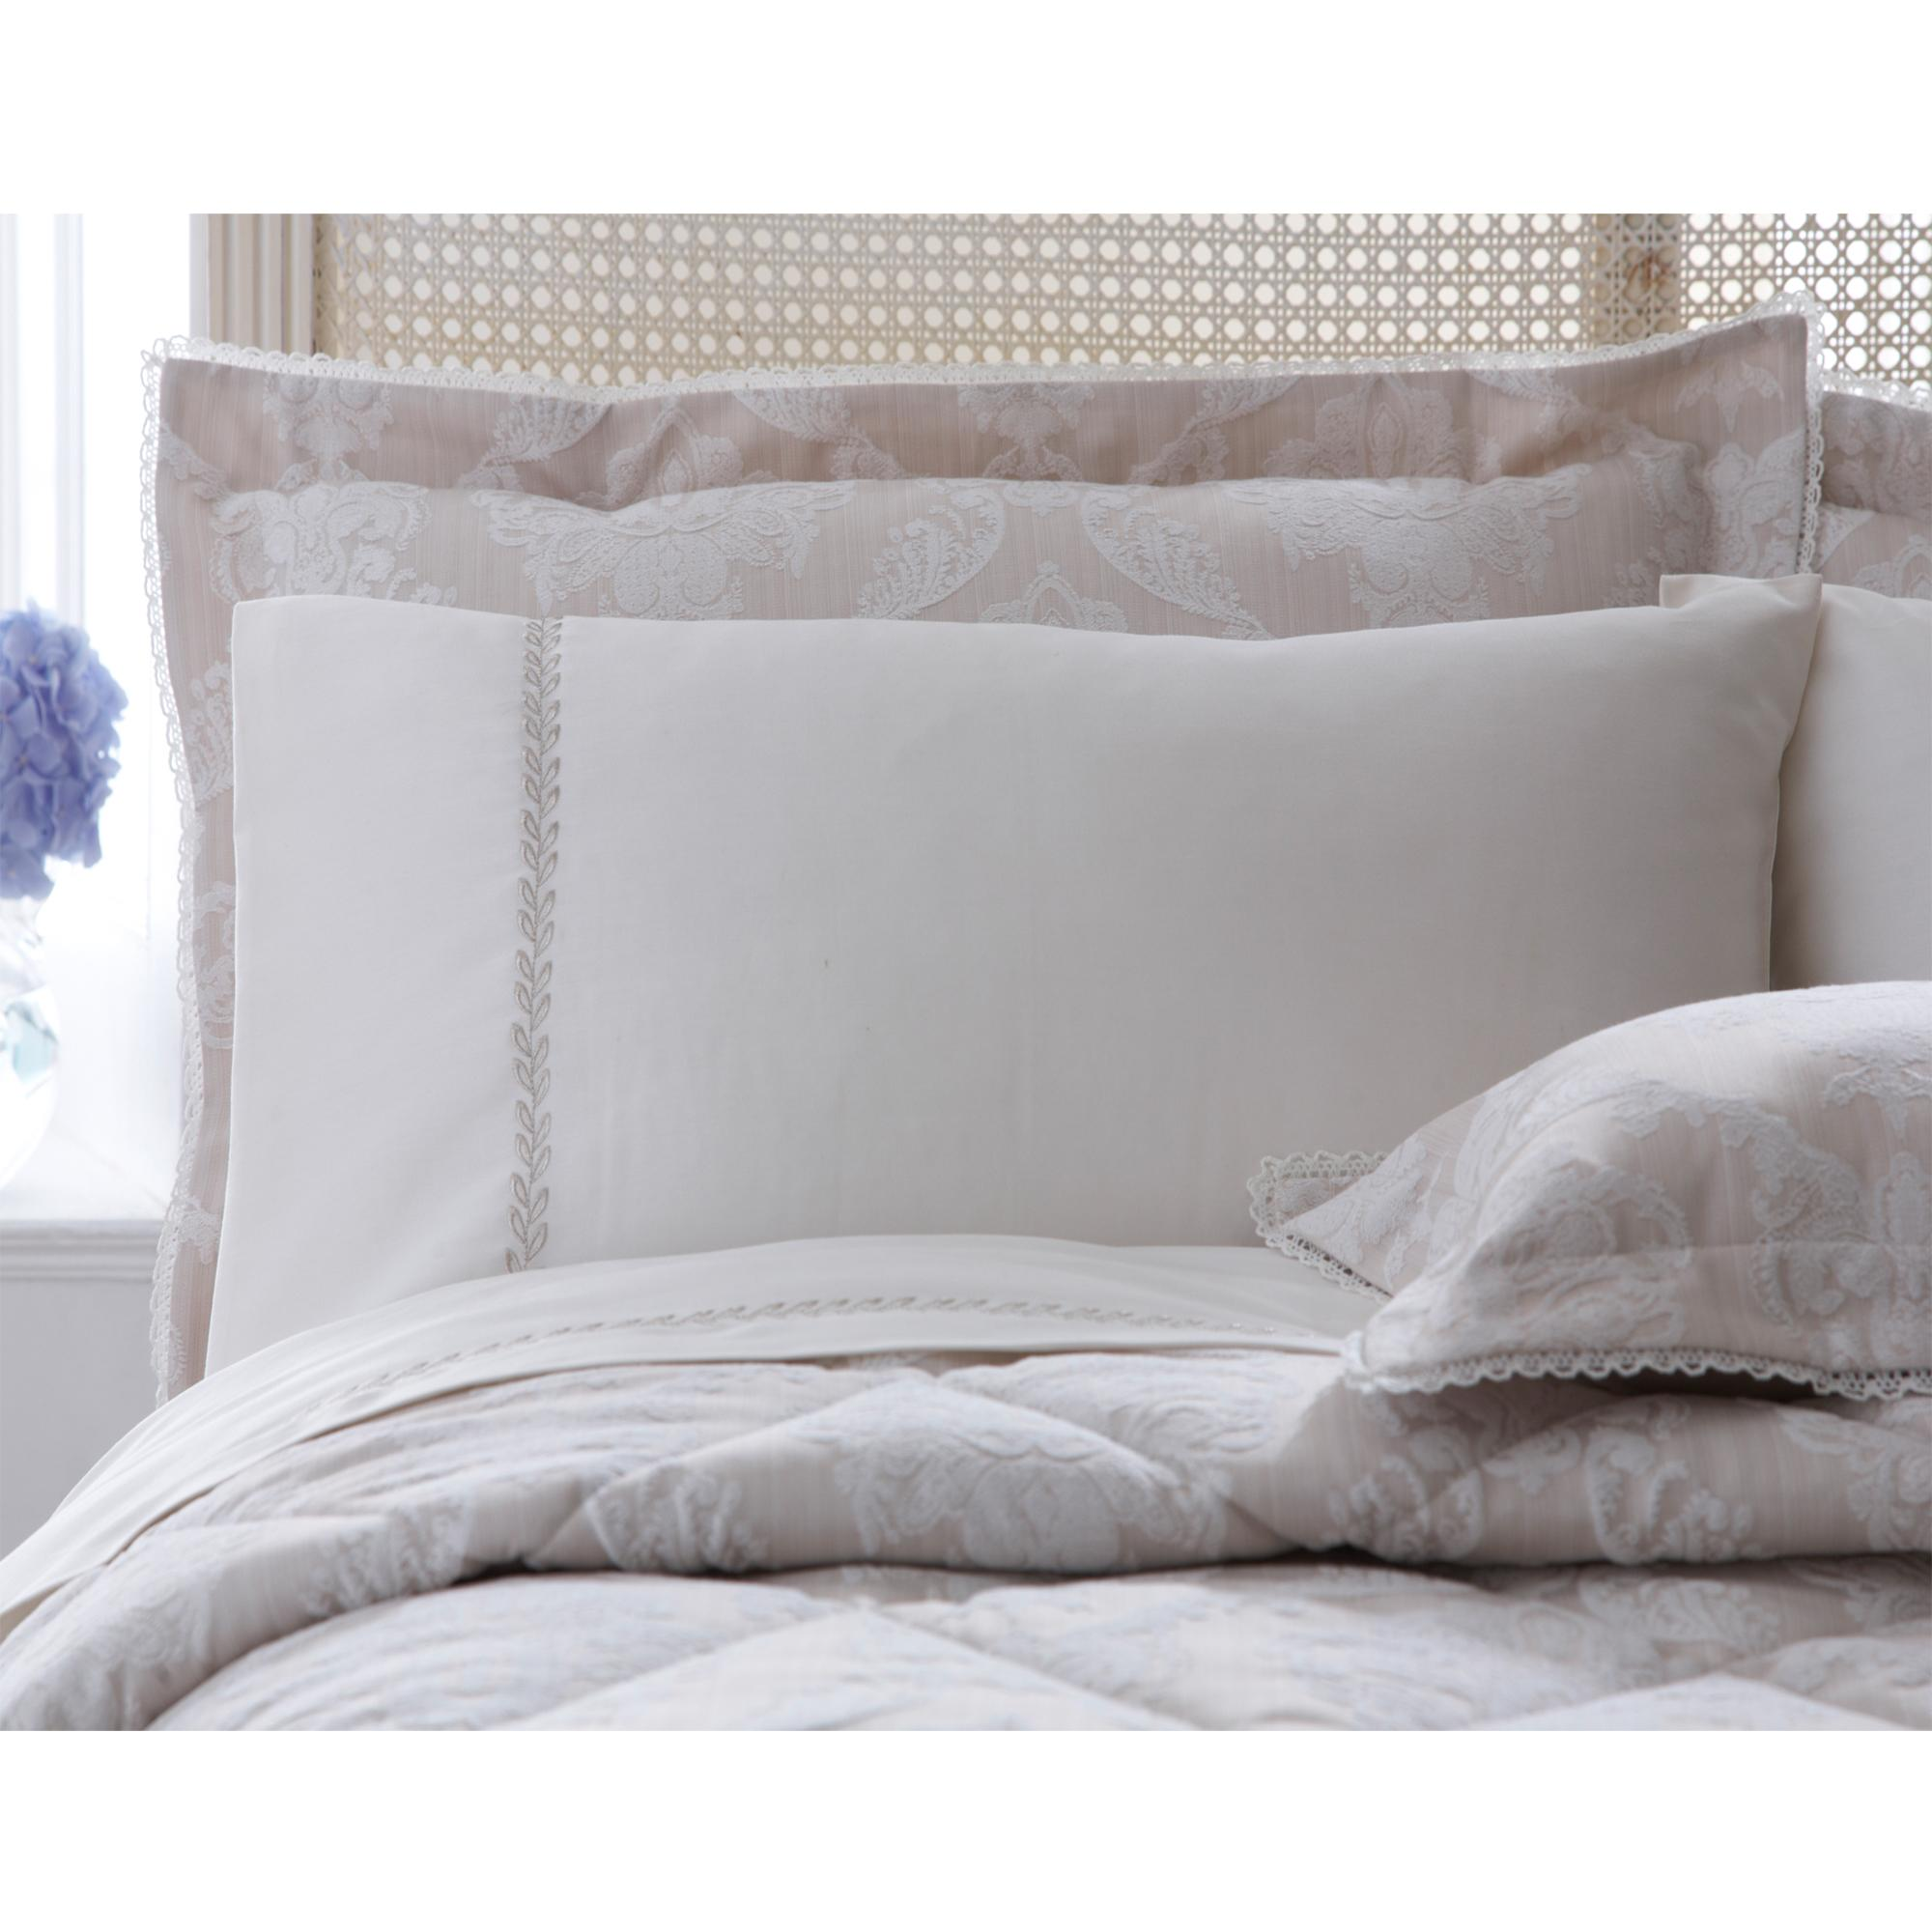 Dorma Natural Aveline Collection Embroidered Pillowcase